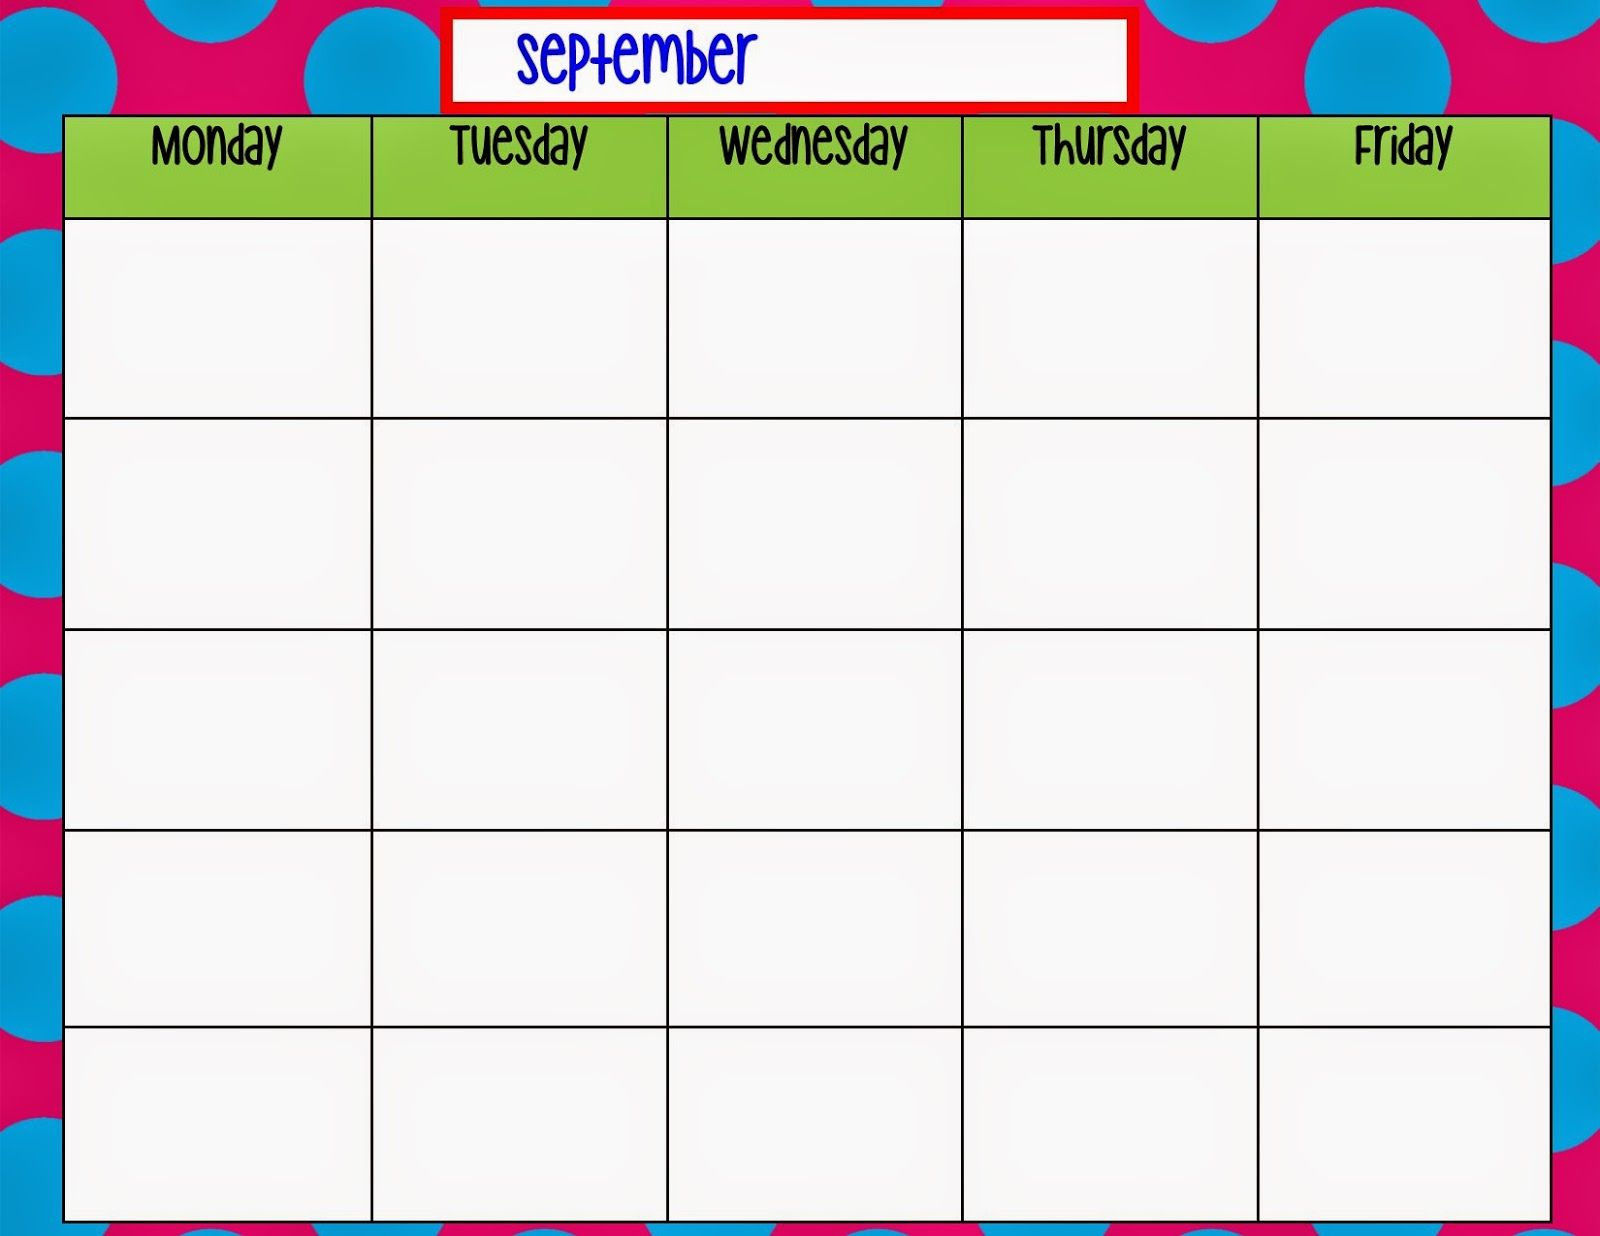 Monday Through Friday Calendar Template | Preschool | Weekly with regard to Monday Through Friday Blank Schedule Print Out